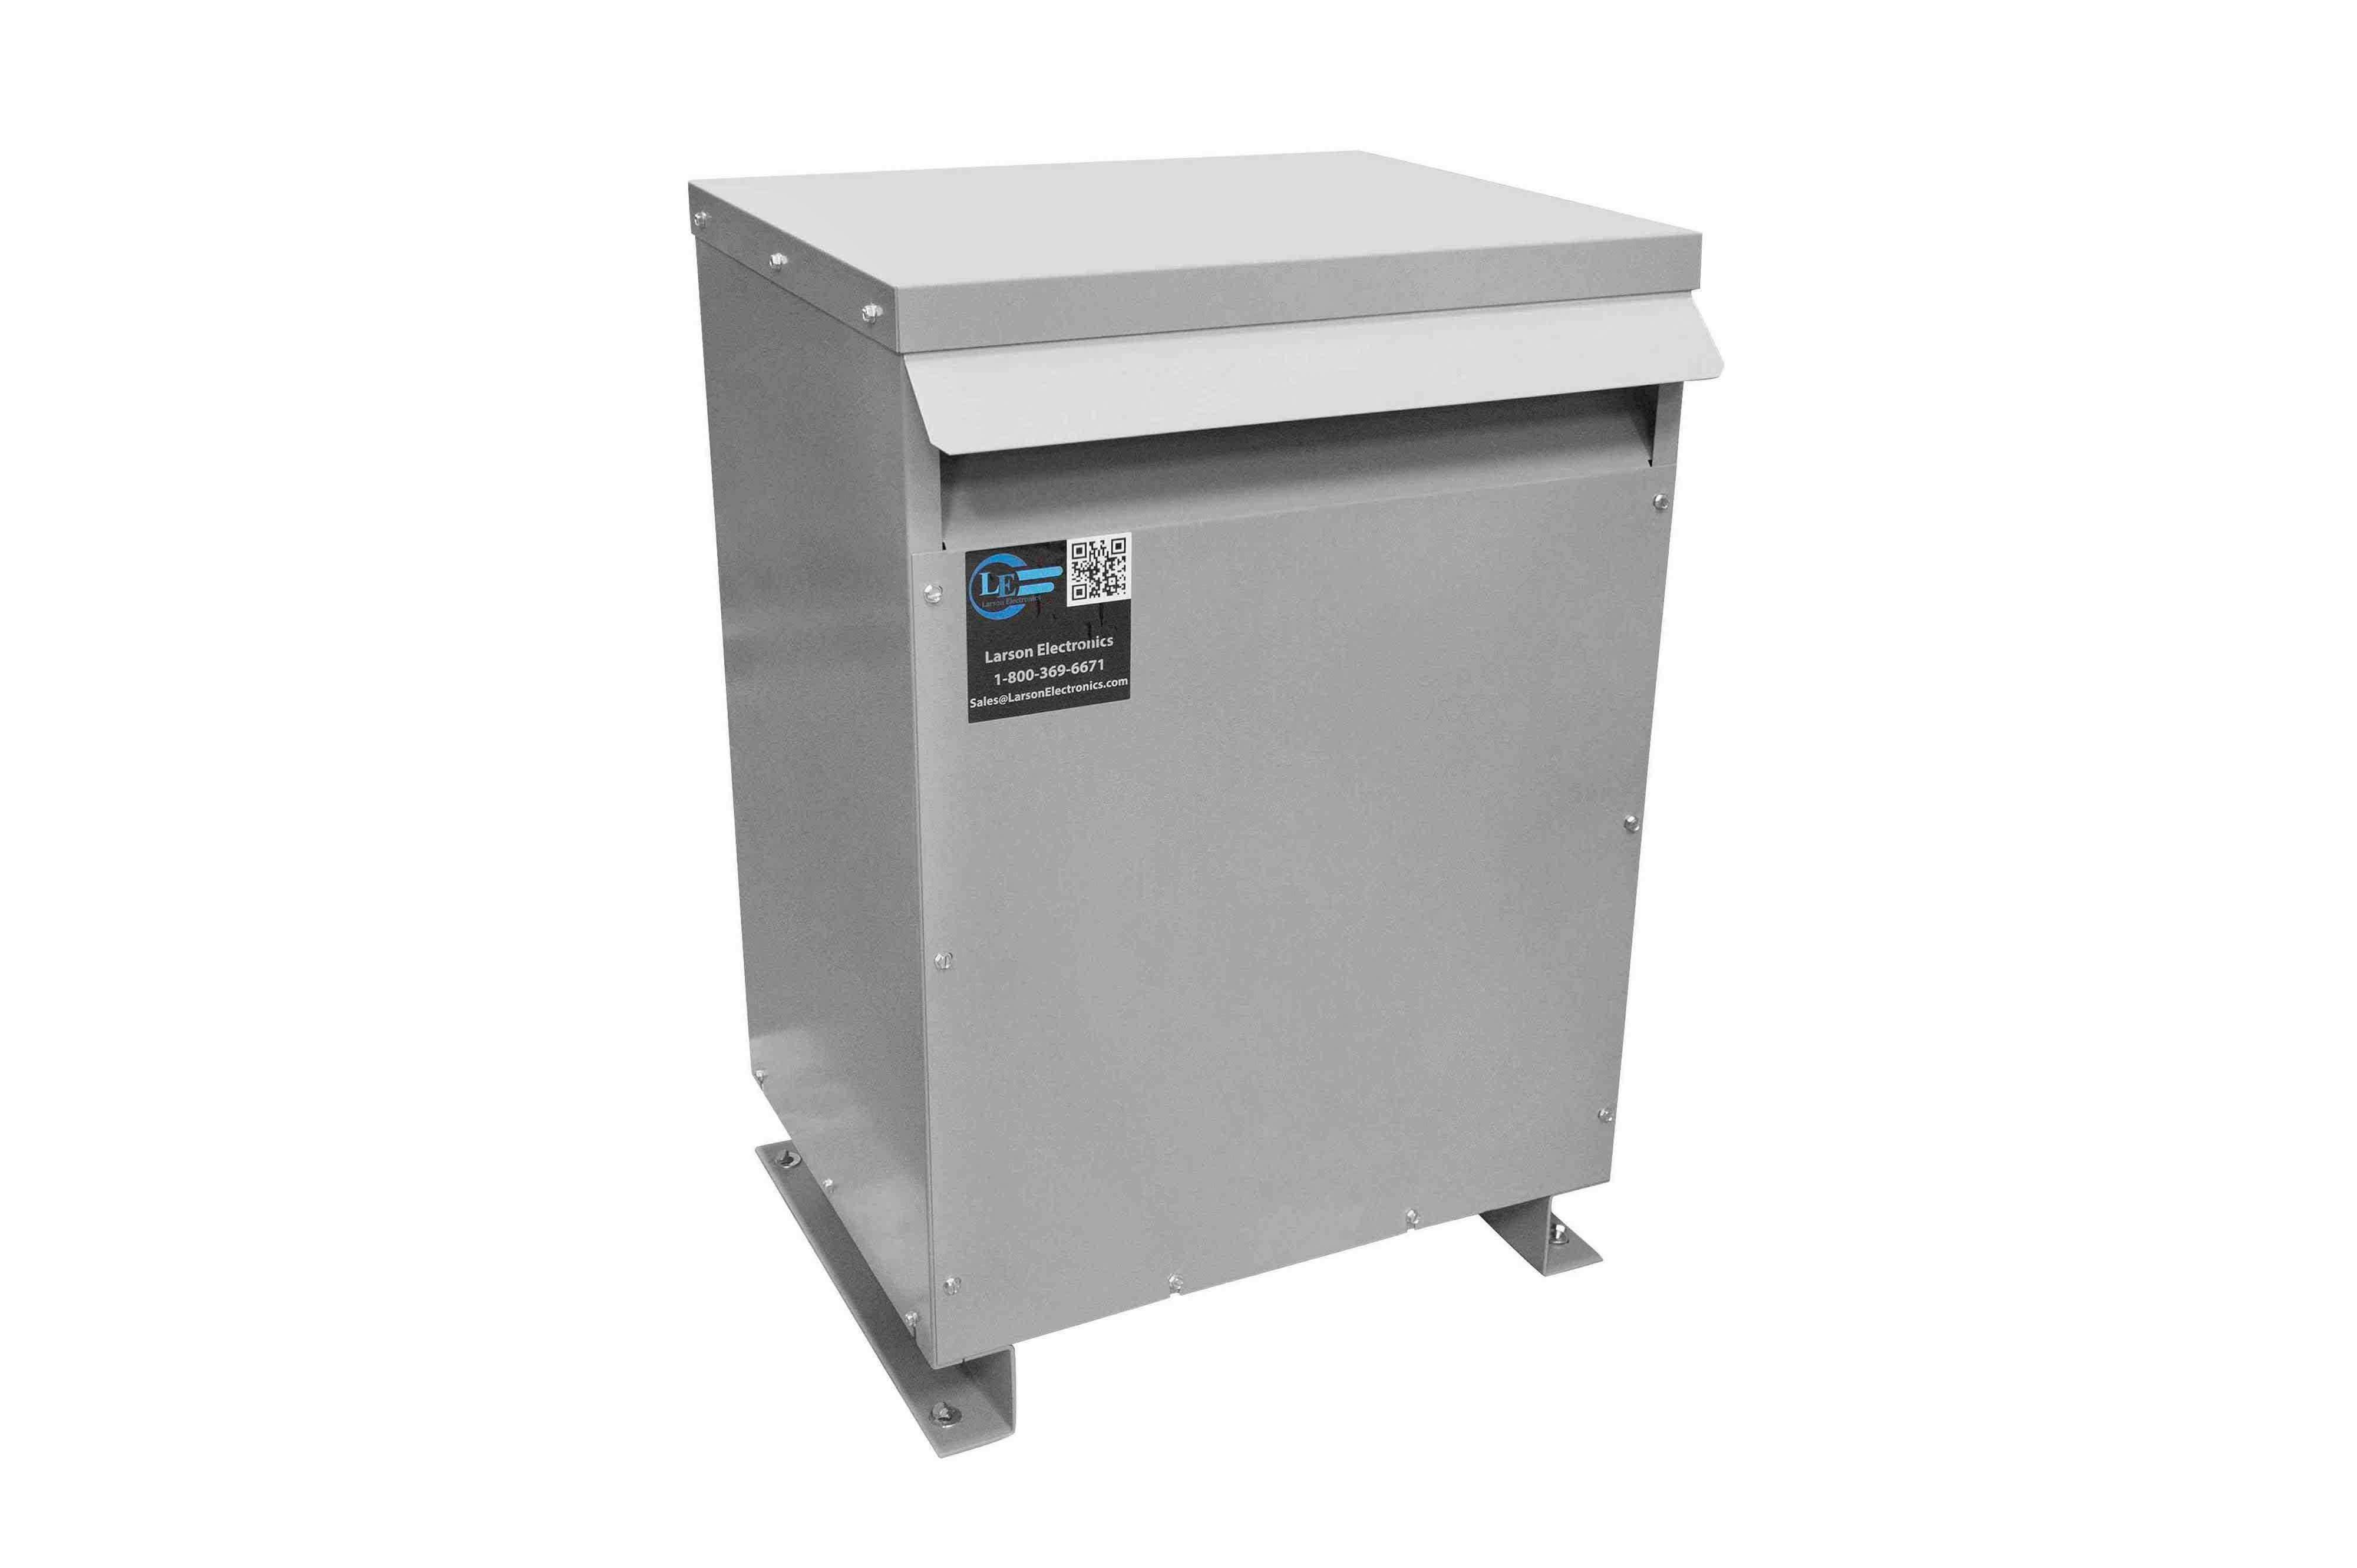 1000 kVA 3PH Isolation Transformer, 220V Wye Primary, 208Y/120 Wye-N Secondary, N3R, Ventilated, 60 Hz